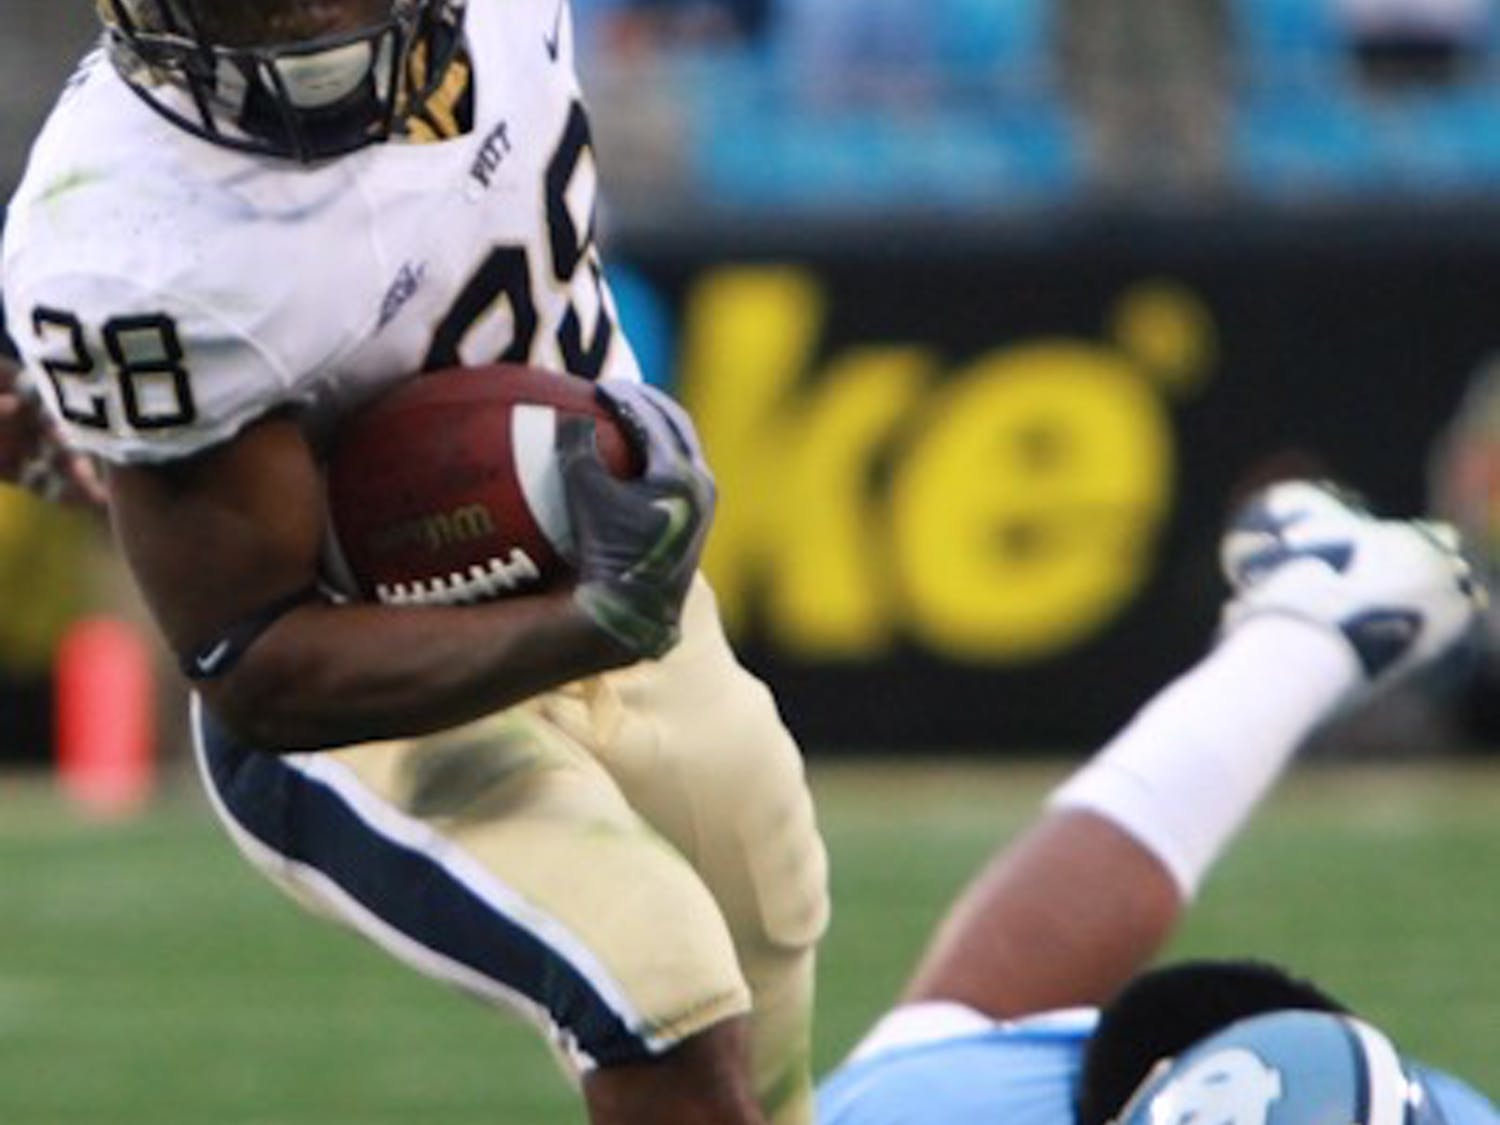 The Tar Heels had trouble catching Pathers freshman running back Dion Lewis, who ran for 159 yards.  DTH/Phong Dinh